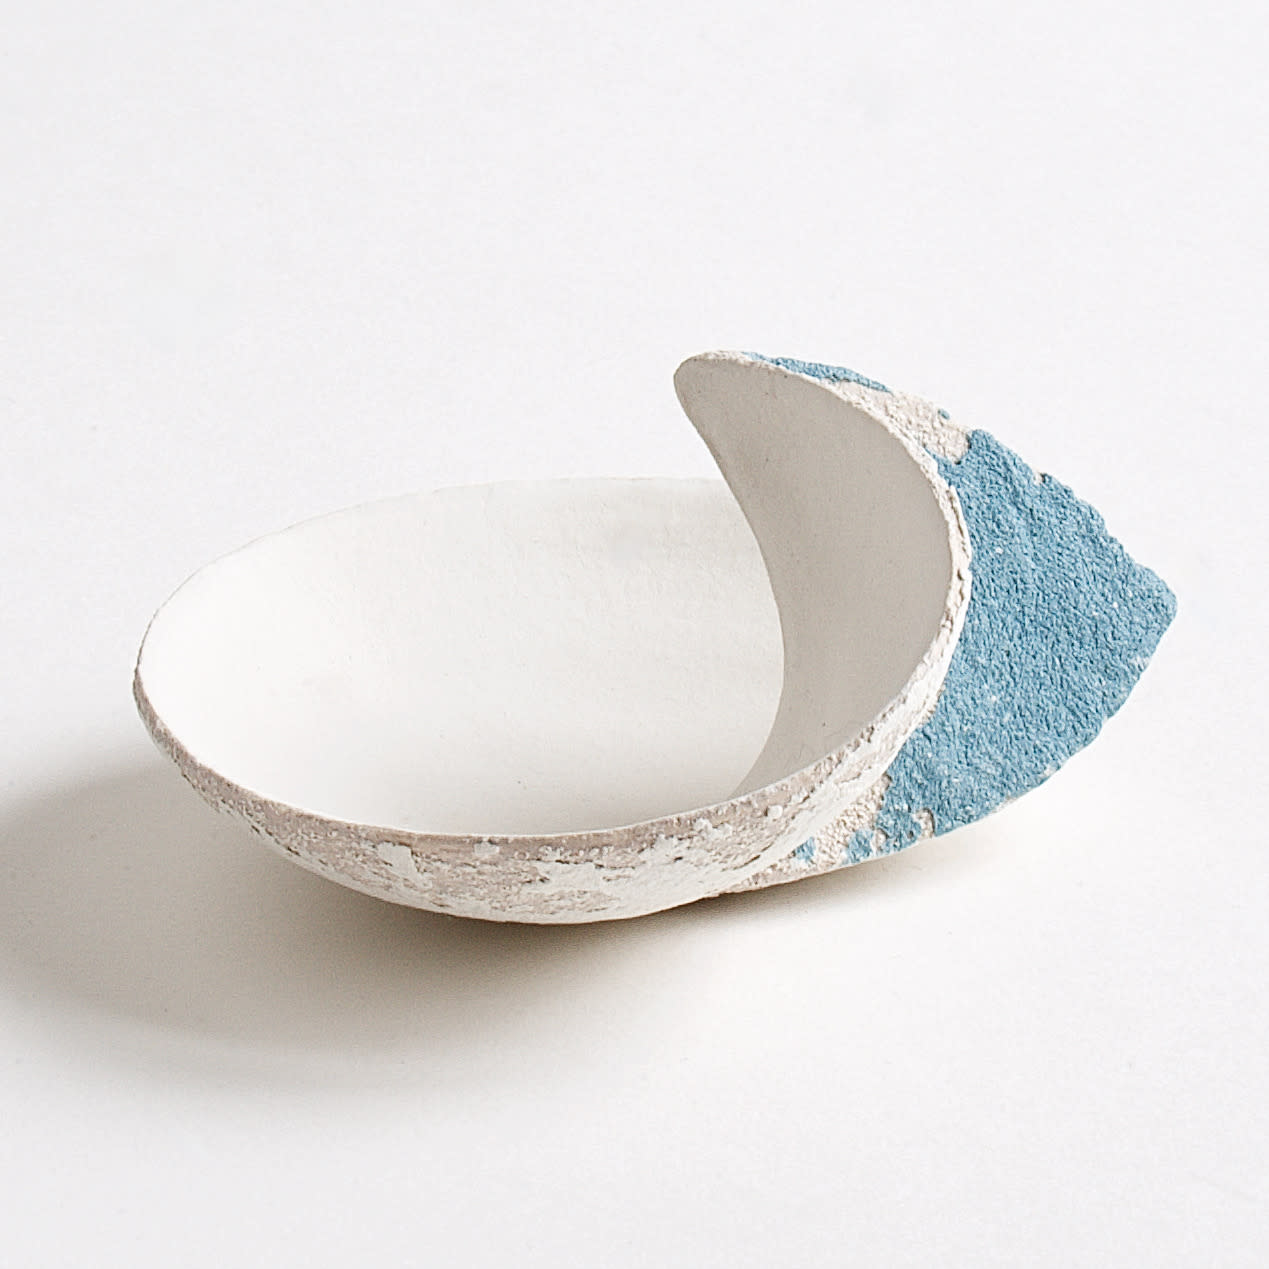 """<span class=""""link fancybox-details-link""""><a href=""""/artists/79-clare-conrad/works/8131-clare-conrad-tiny-wave-dish-white-with-ocean-2021/"""">View Detail Page</a></span><div class=""""artist""""><strong>Clare Conrad</strong></div> b. 1948 <div class=""""title""""><em>Tiny wave dish, white with ocean</em>, 2021</div> <div class=""""medium"""">wheel-thrown stoneware </div> <div class=""""dimensions"""">dia. 10 cm </div><div class=""""price"""">£110.00</div><div class=""""copyright_line"""">Own Art: £11 x 10 Months, 0% APR</div>"""